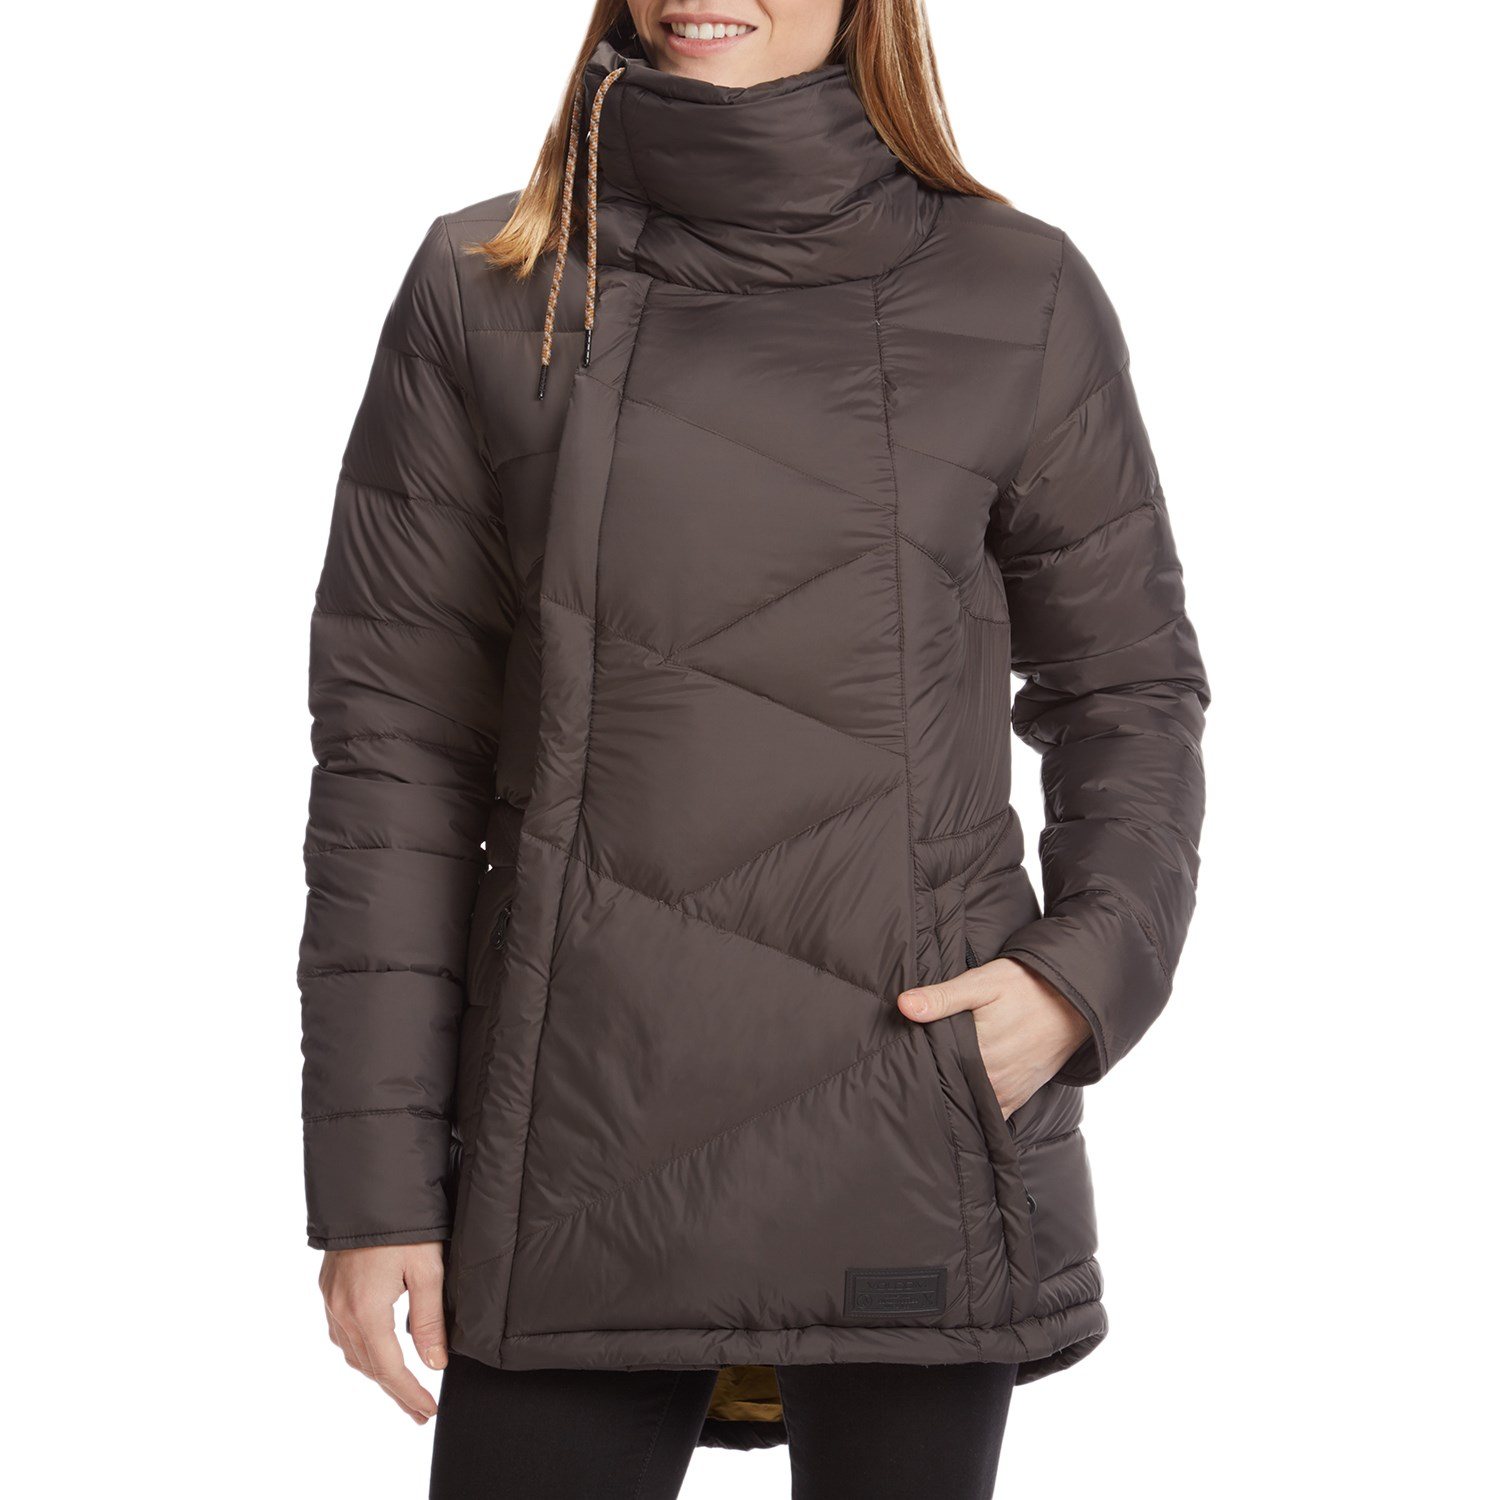 Reviews on North Face Outlet in Singapore - Velocity Novena, Ion Orchard, Plaza Singapura, Holland Village, Mustafa Centre.